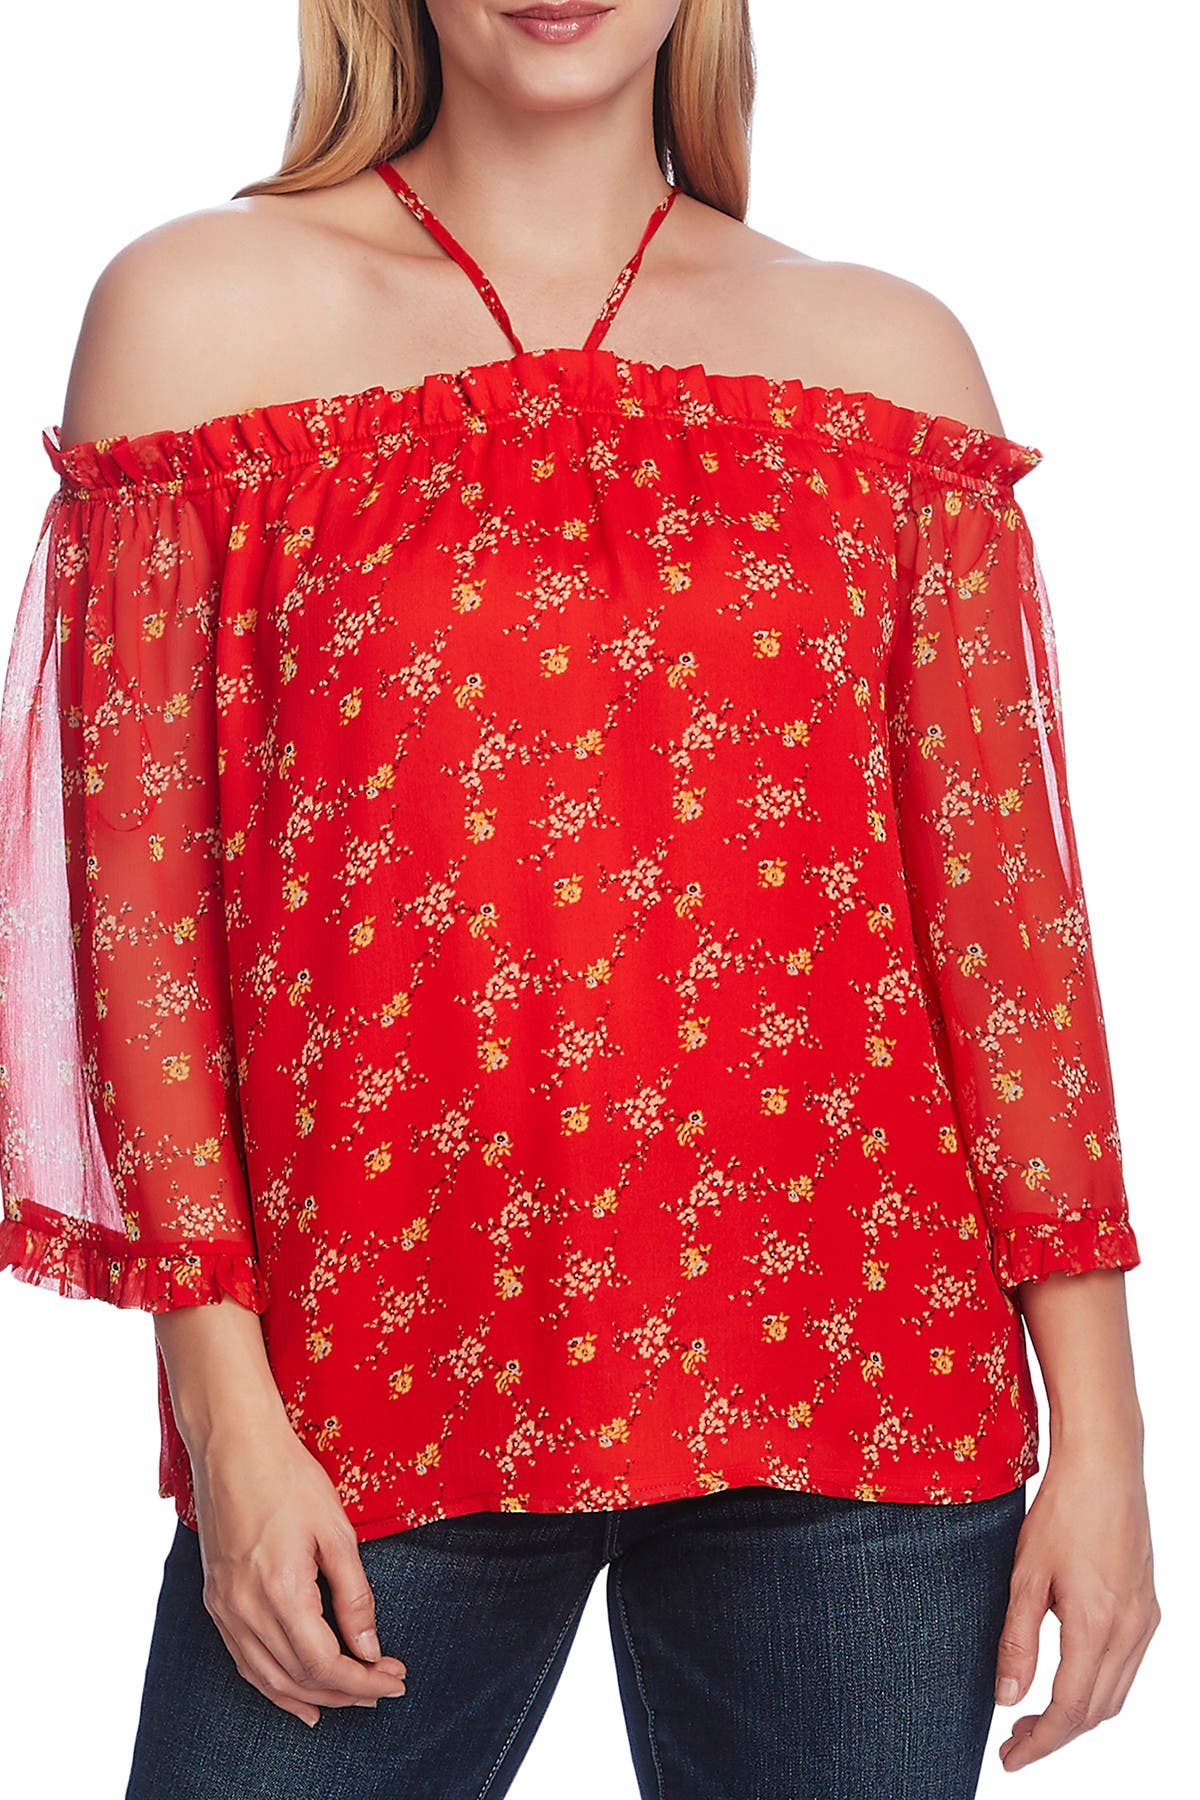 Image of Vince Camuto Bouquet Refresh Top